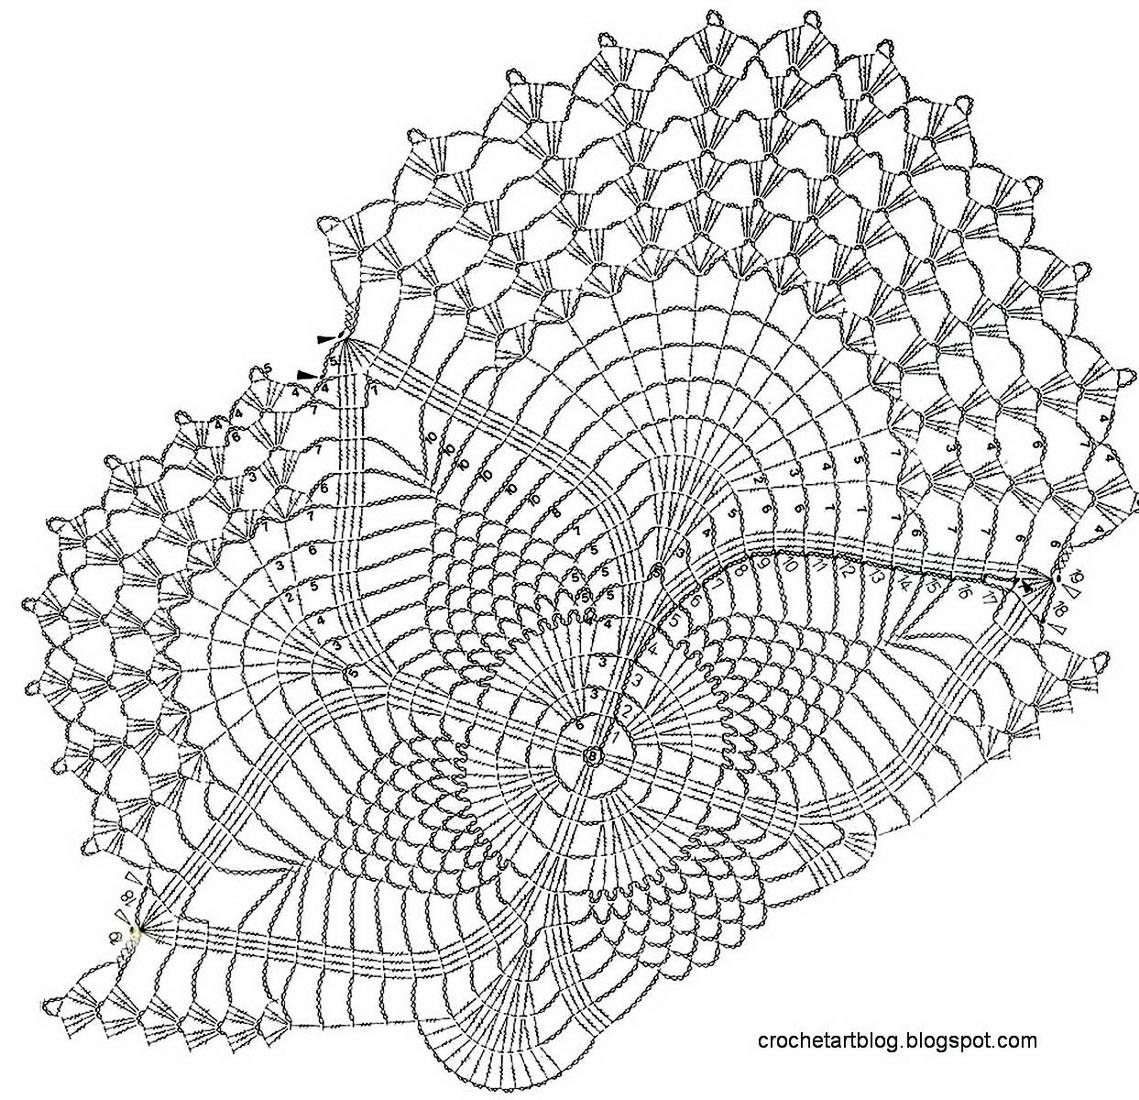 Crochet Doily Patterns With Diagram Maytag Atlantis Dryer Parts Katrinshine Free I Created This Collection Of To Decorate Your Home There Are For Intermediate Advanced Levels